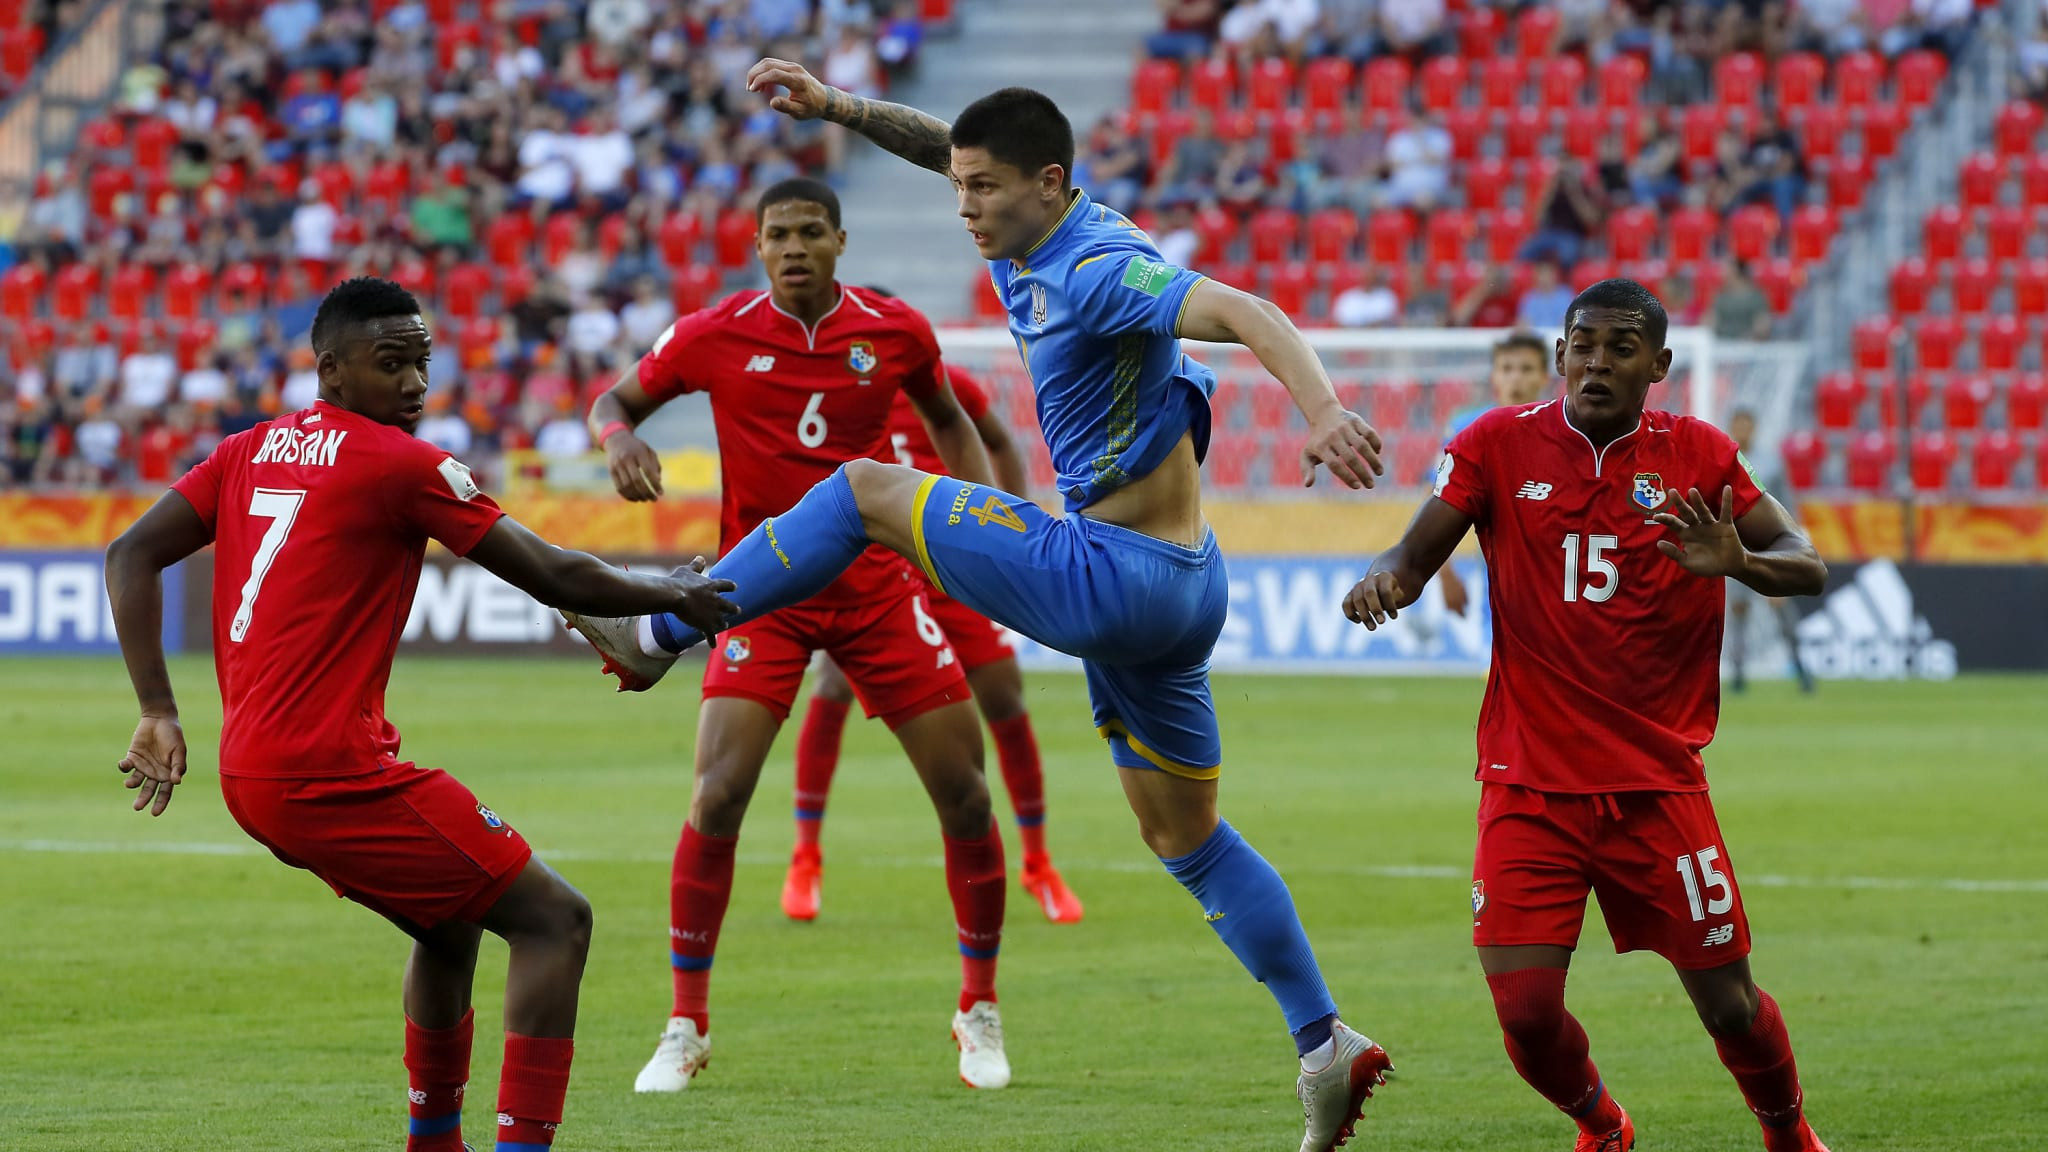 Ukraine are through to the last eight of the FIFA Under-20 World Cup after a 4-1 victory over Panama in Tychy ©Getty Images